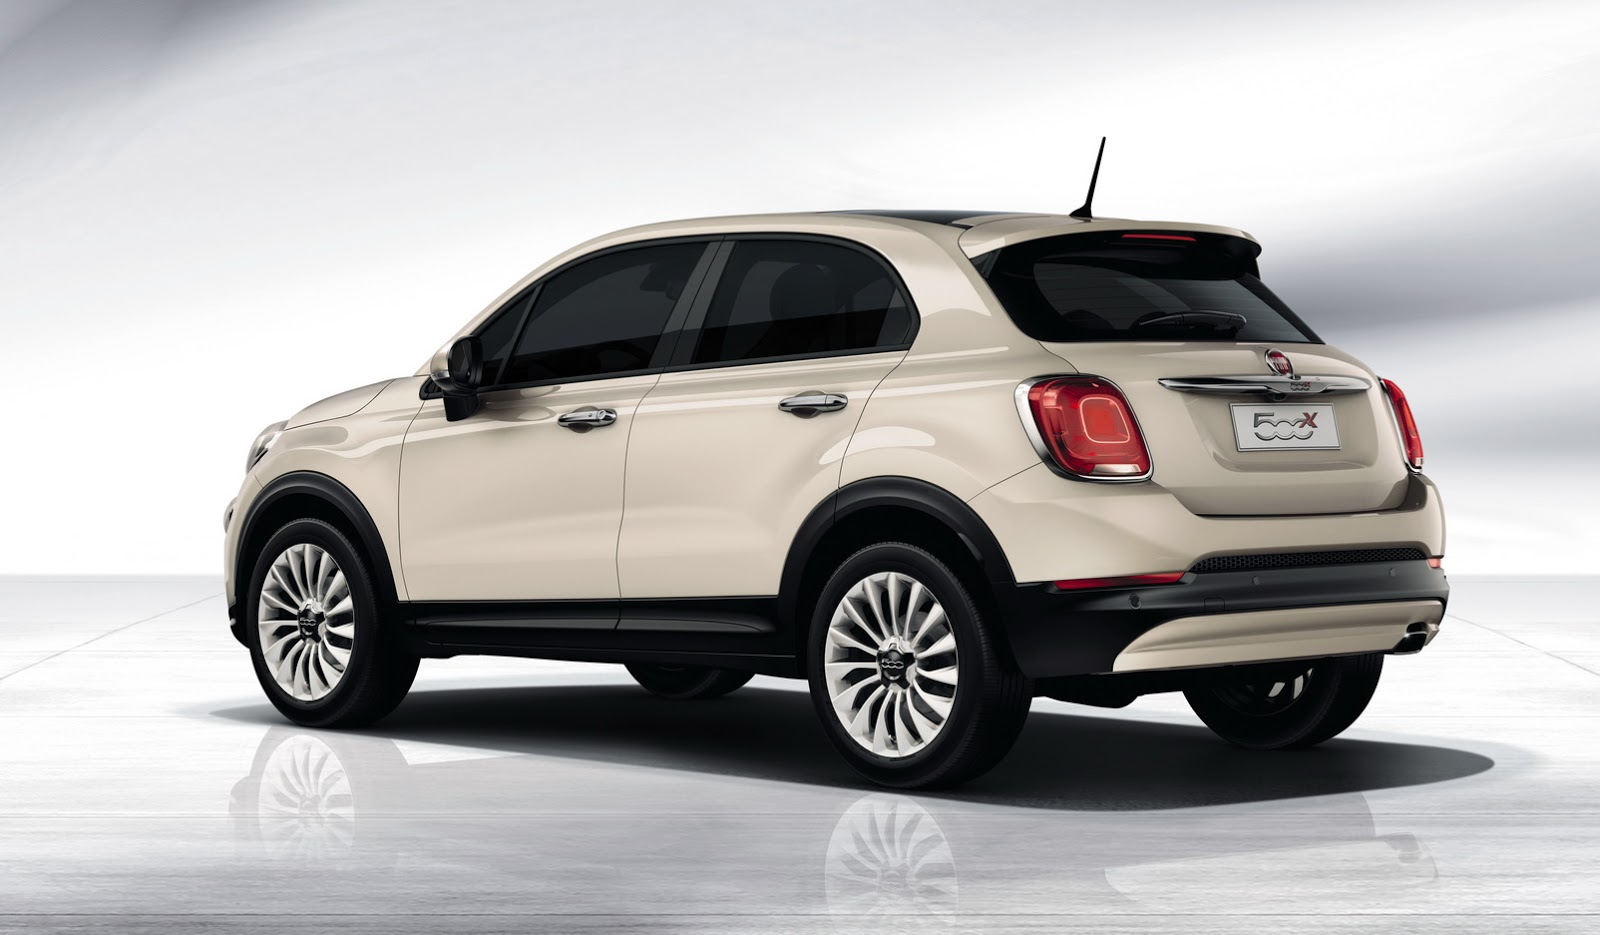 fiat 39 s 500x small crossover revealed will be sold in u s. Black Bedroom Furniture Sets. Home Design Ideas